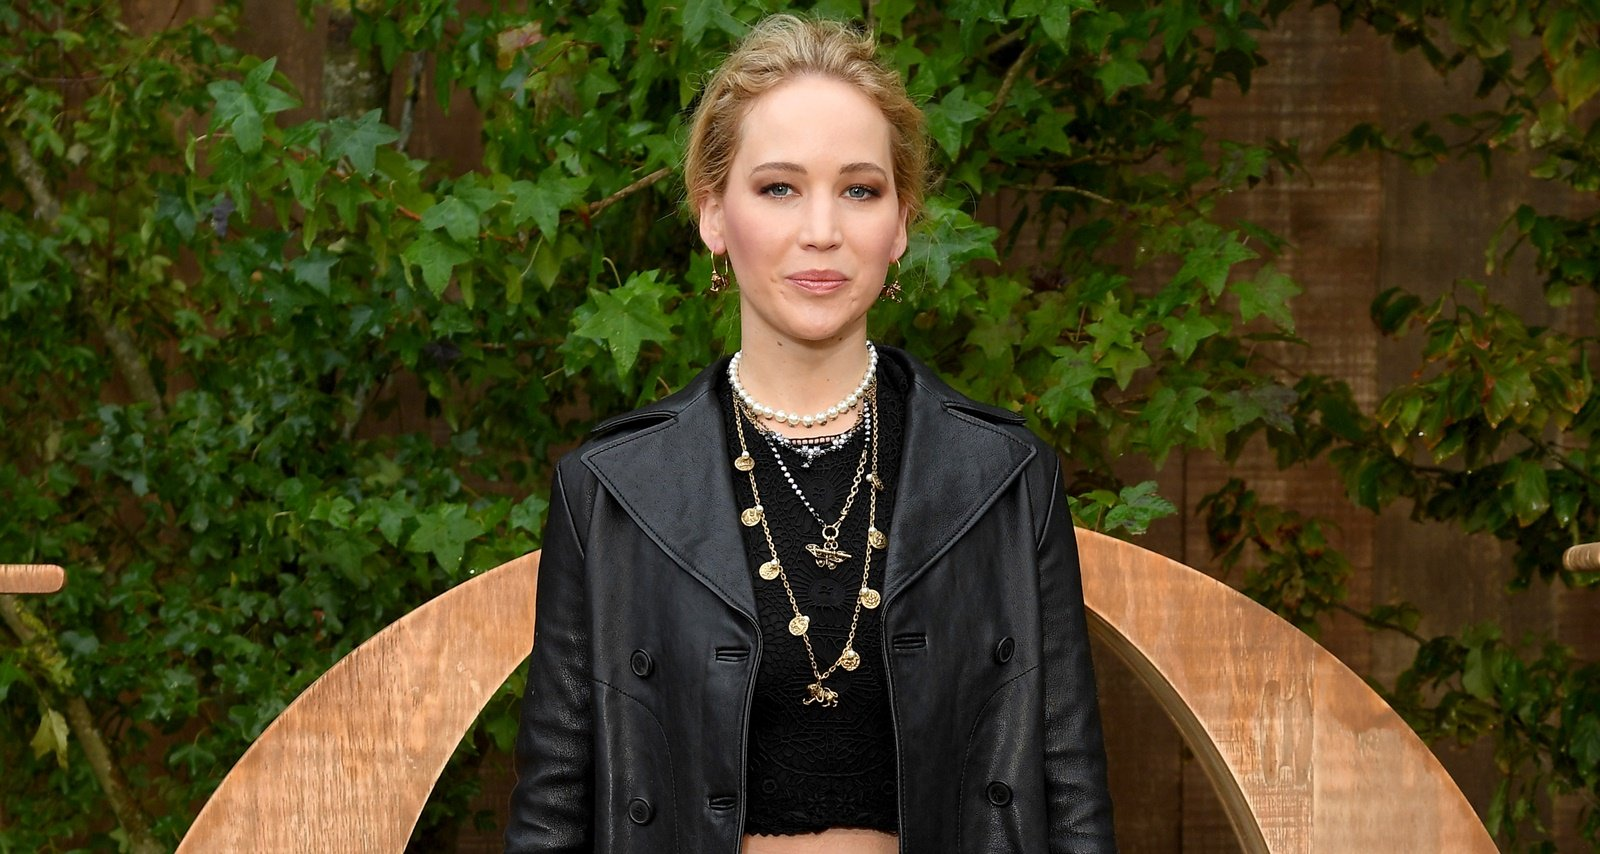 Cooke Maroney Wiki, Age, Family & Facts About Jennifer Lawrence's Husband